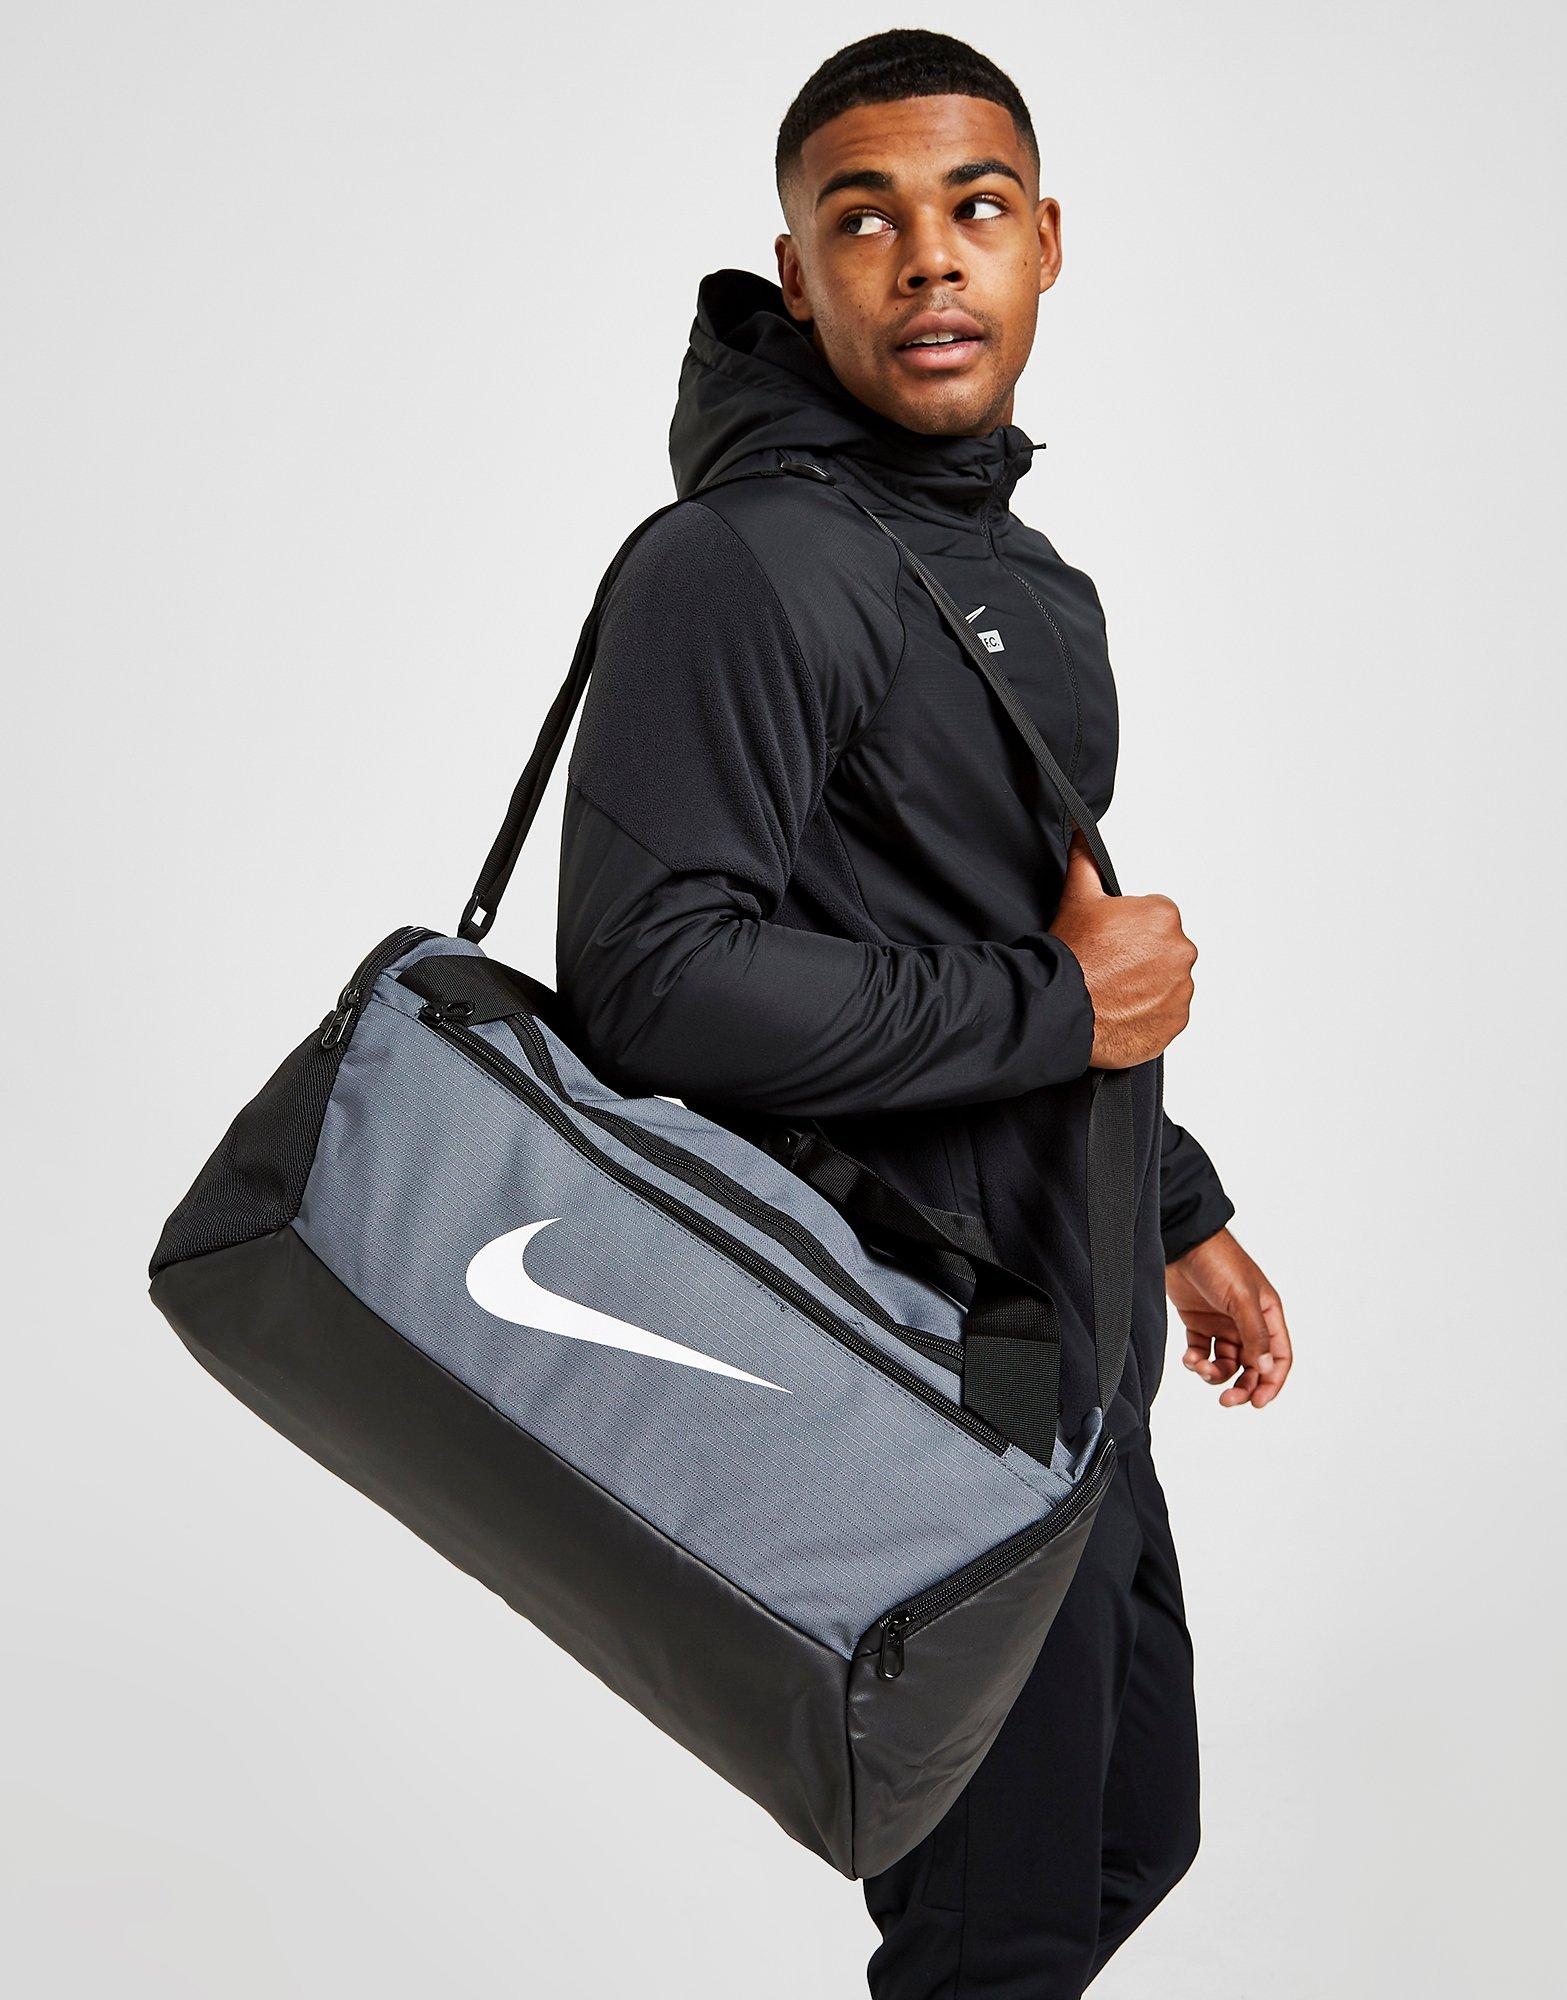 e2e3f871f0 Jd Sports Nike Small Bag of Dragonsfootball17